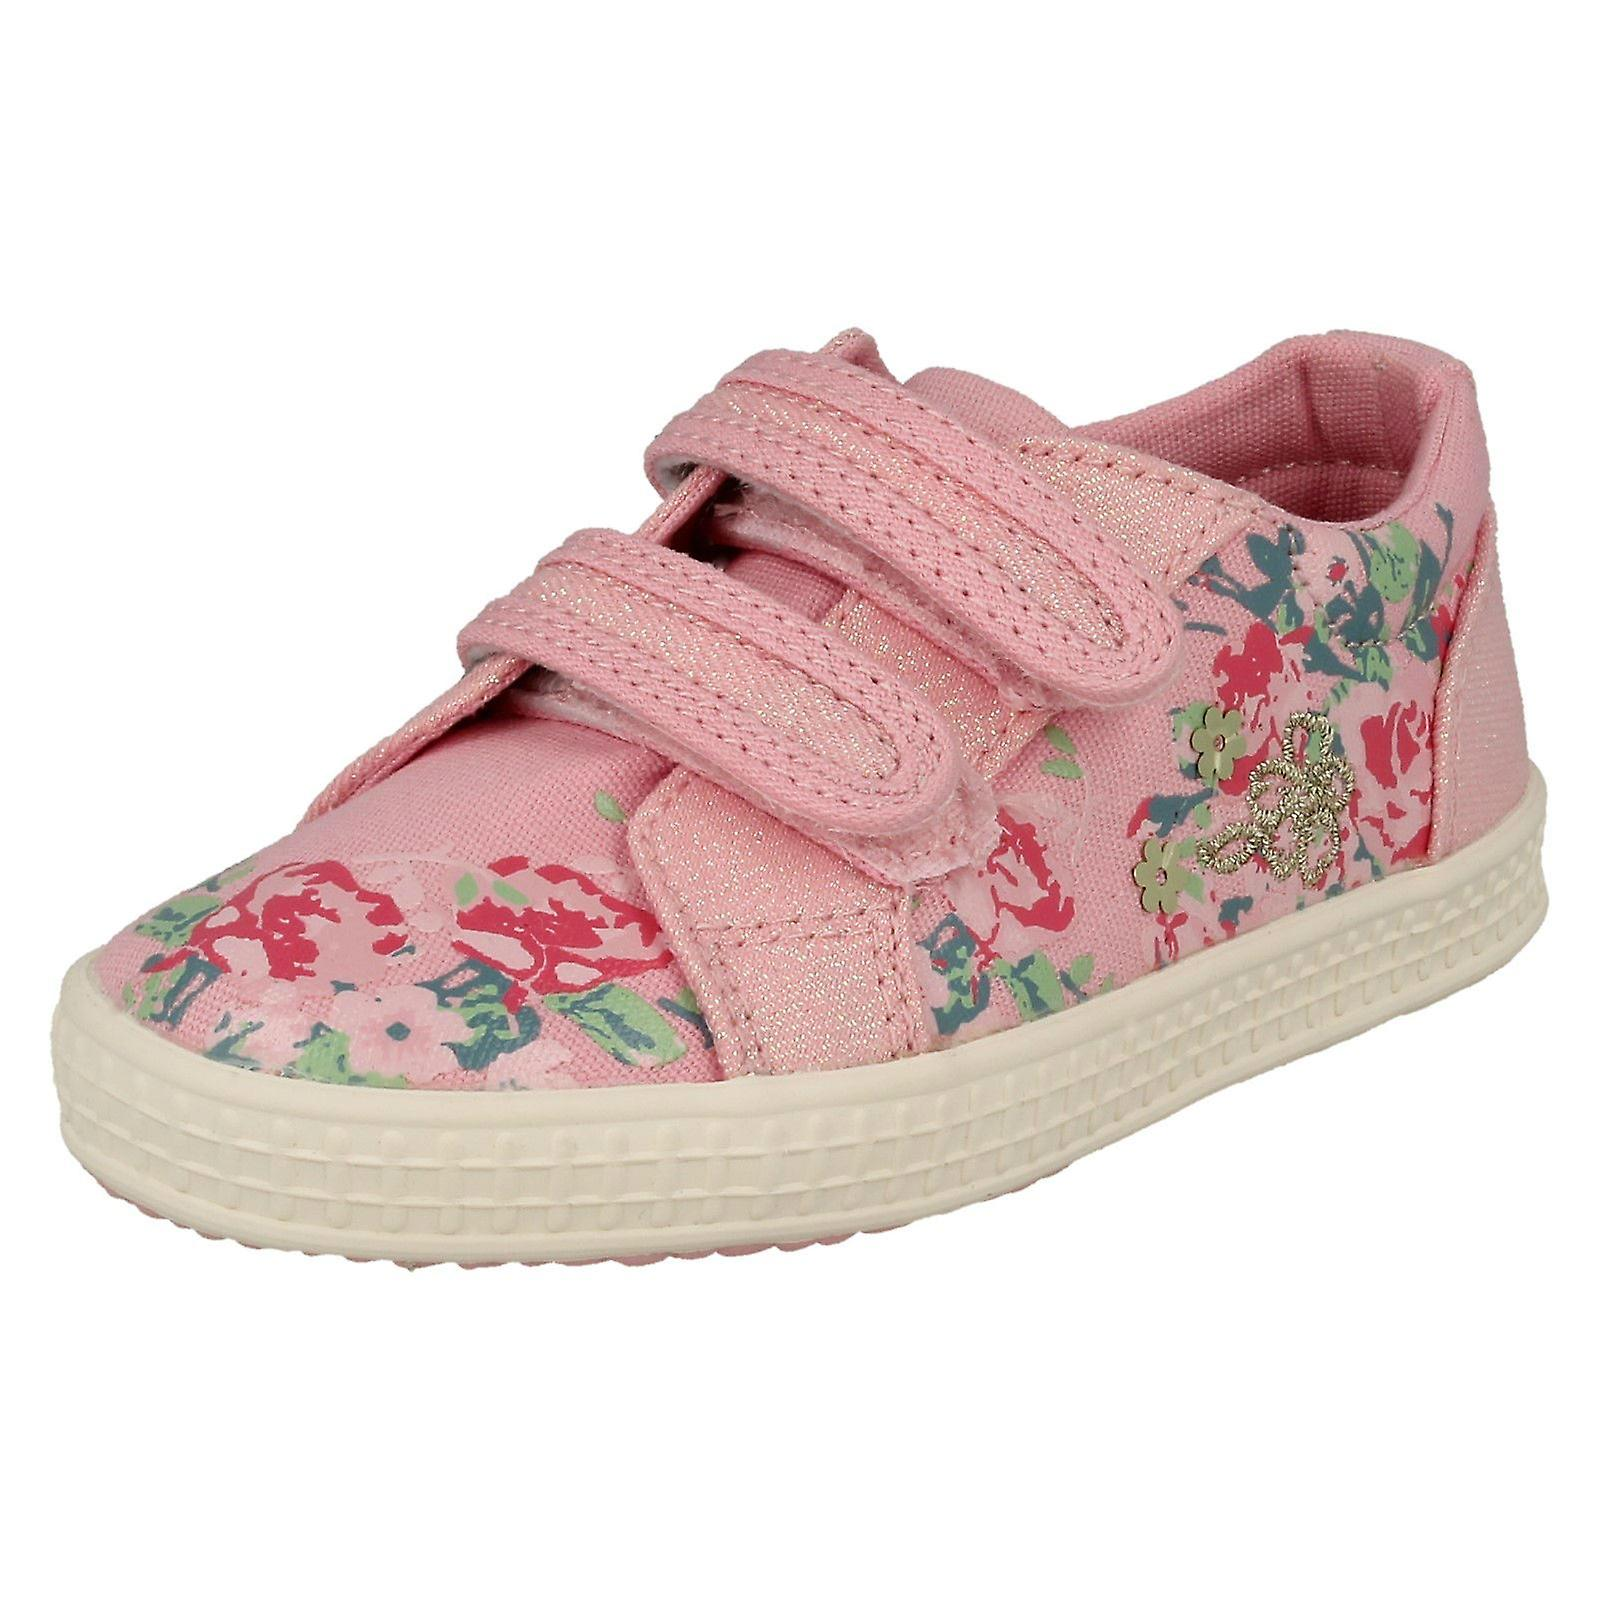 Girls Startrite Casual Canvas Shoes Edith 2 - Pink Canvas - - UK Size 9.5F - Canvas EU Size 27.5 - US Size 10.5 9dafa3